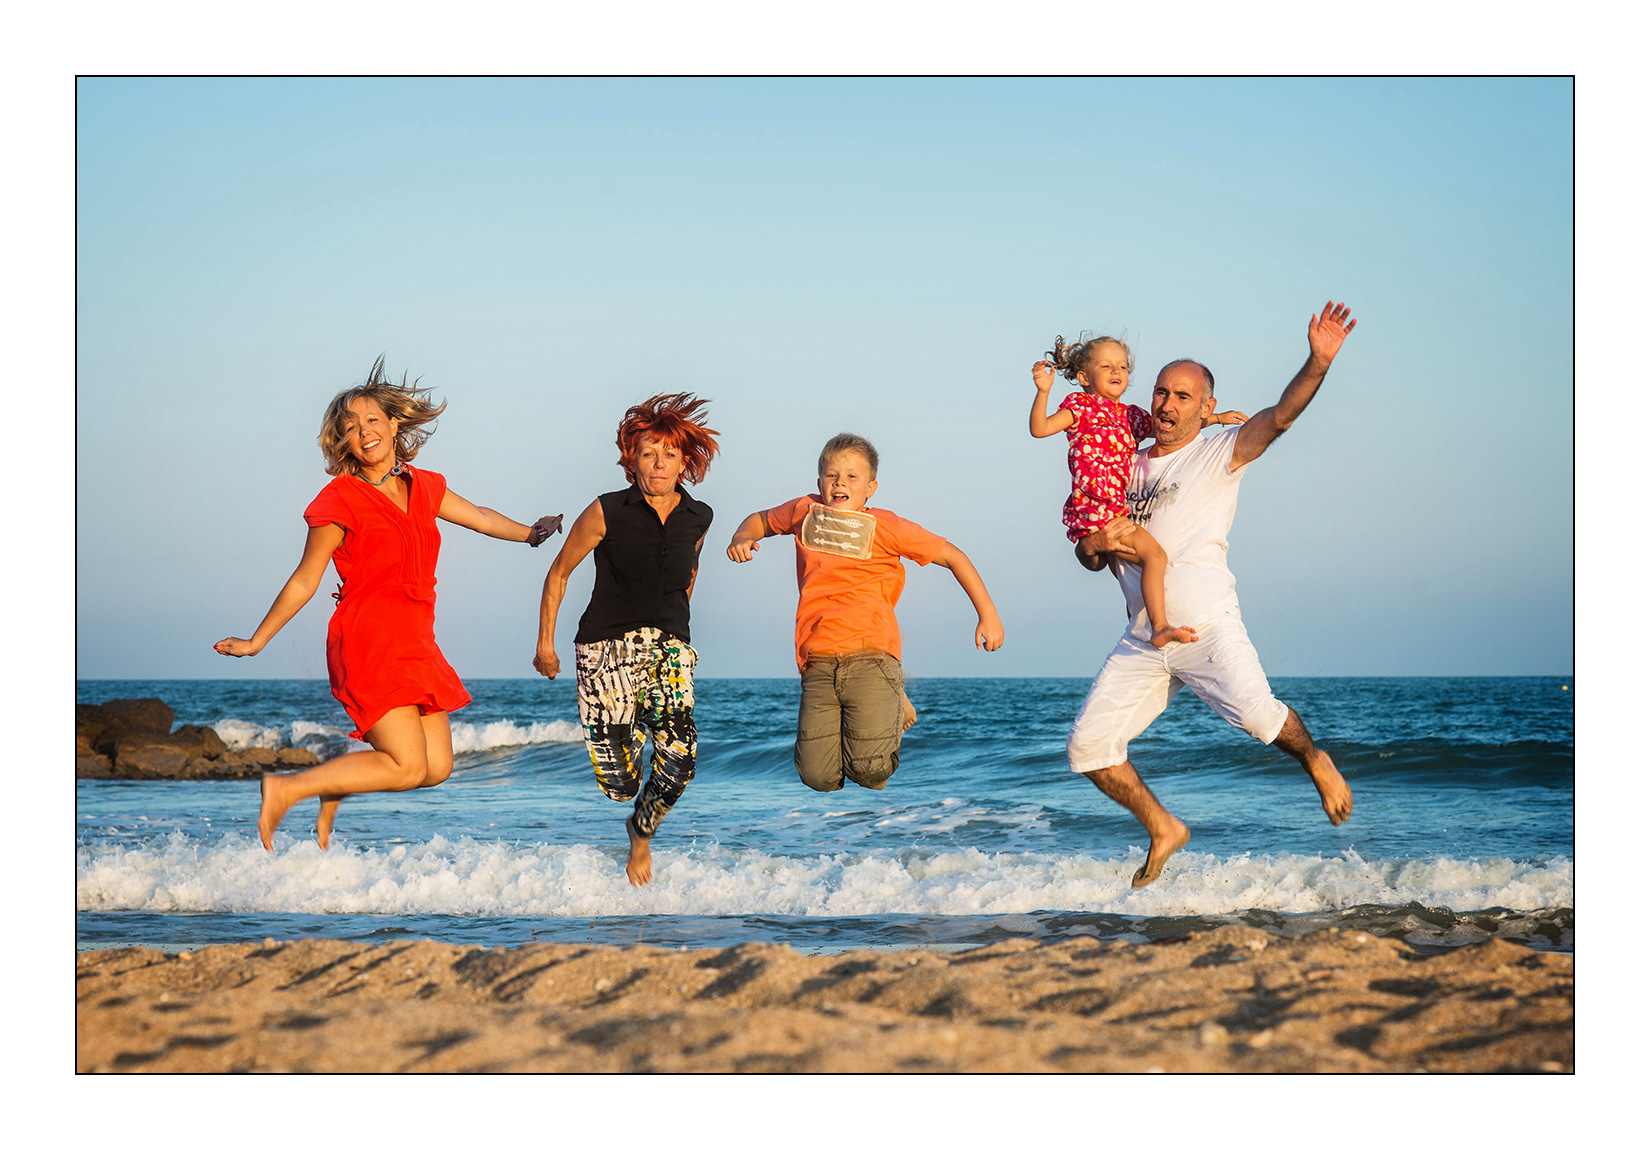 jump-photo-plage-mer-sable-famille-tribu-seance-montpellier